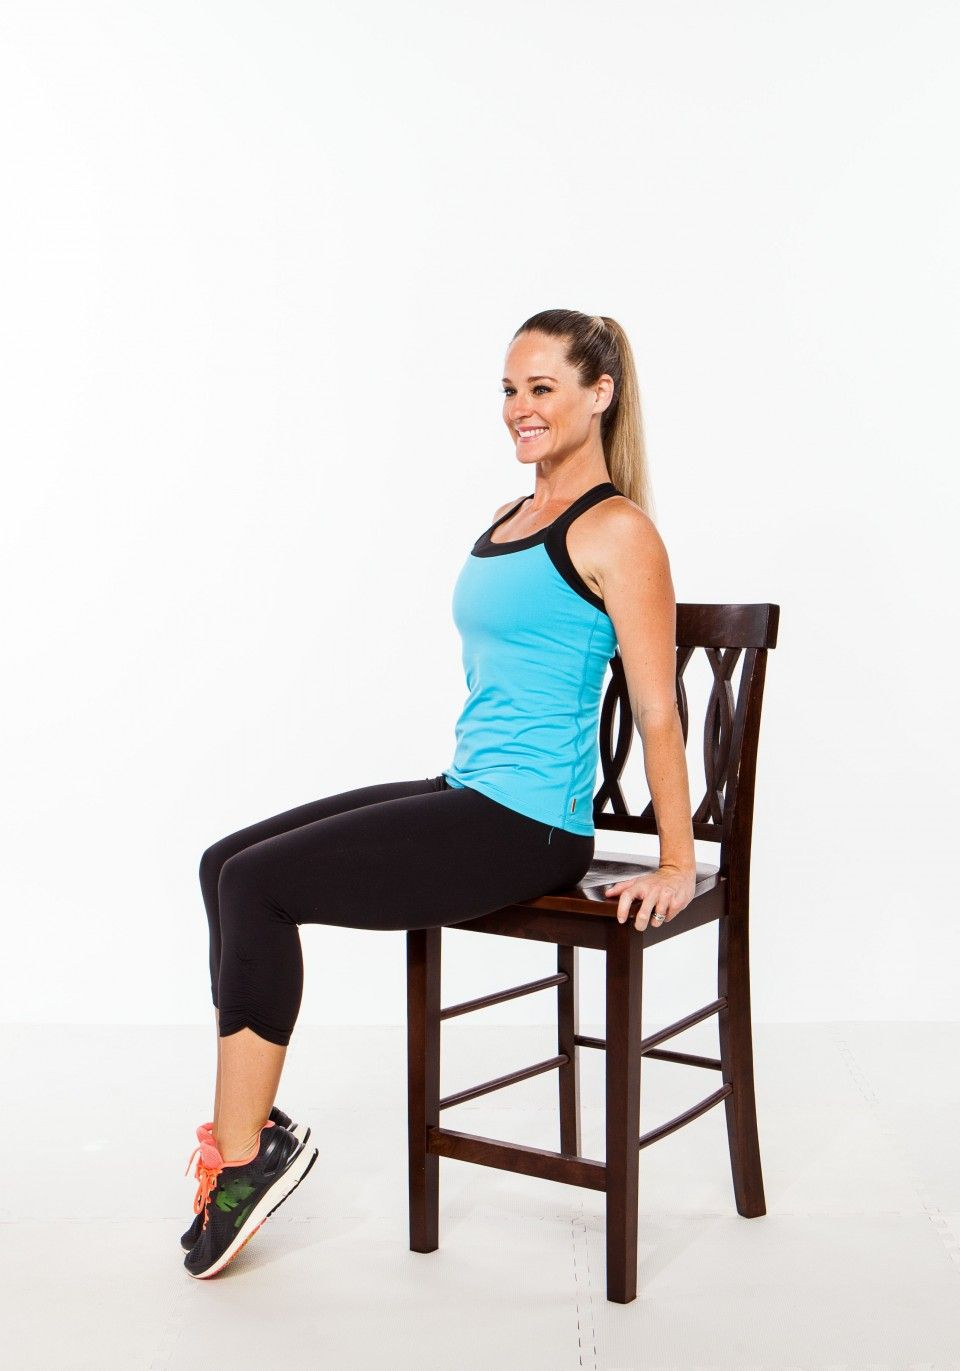 Chair Exercise 20 Minute Full Body Chair Workout Workout Inspiration Chair